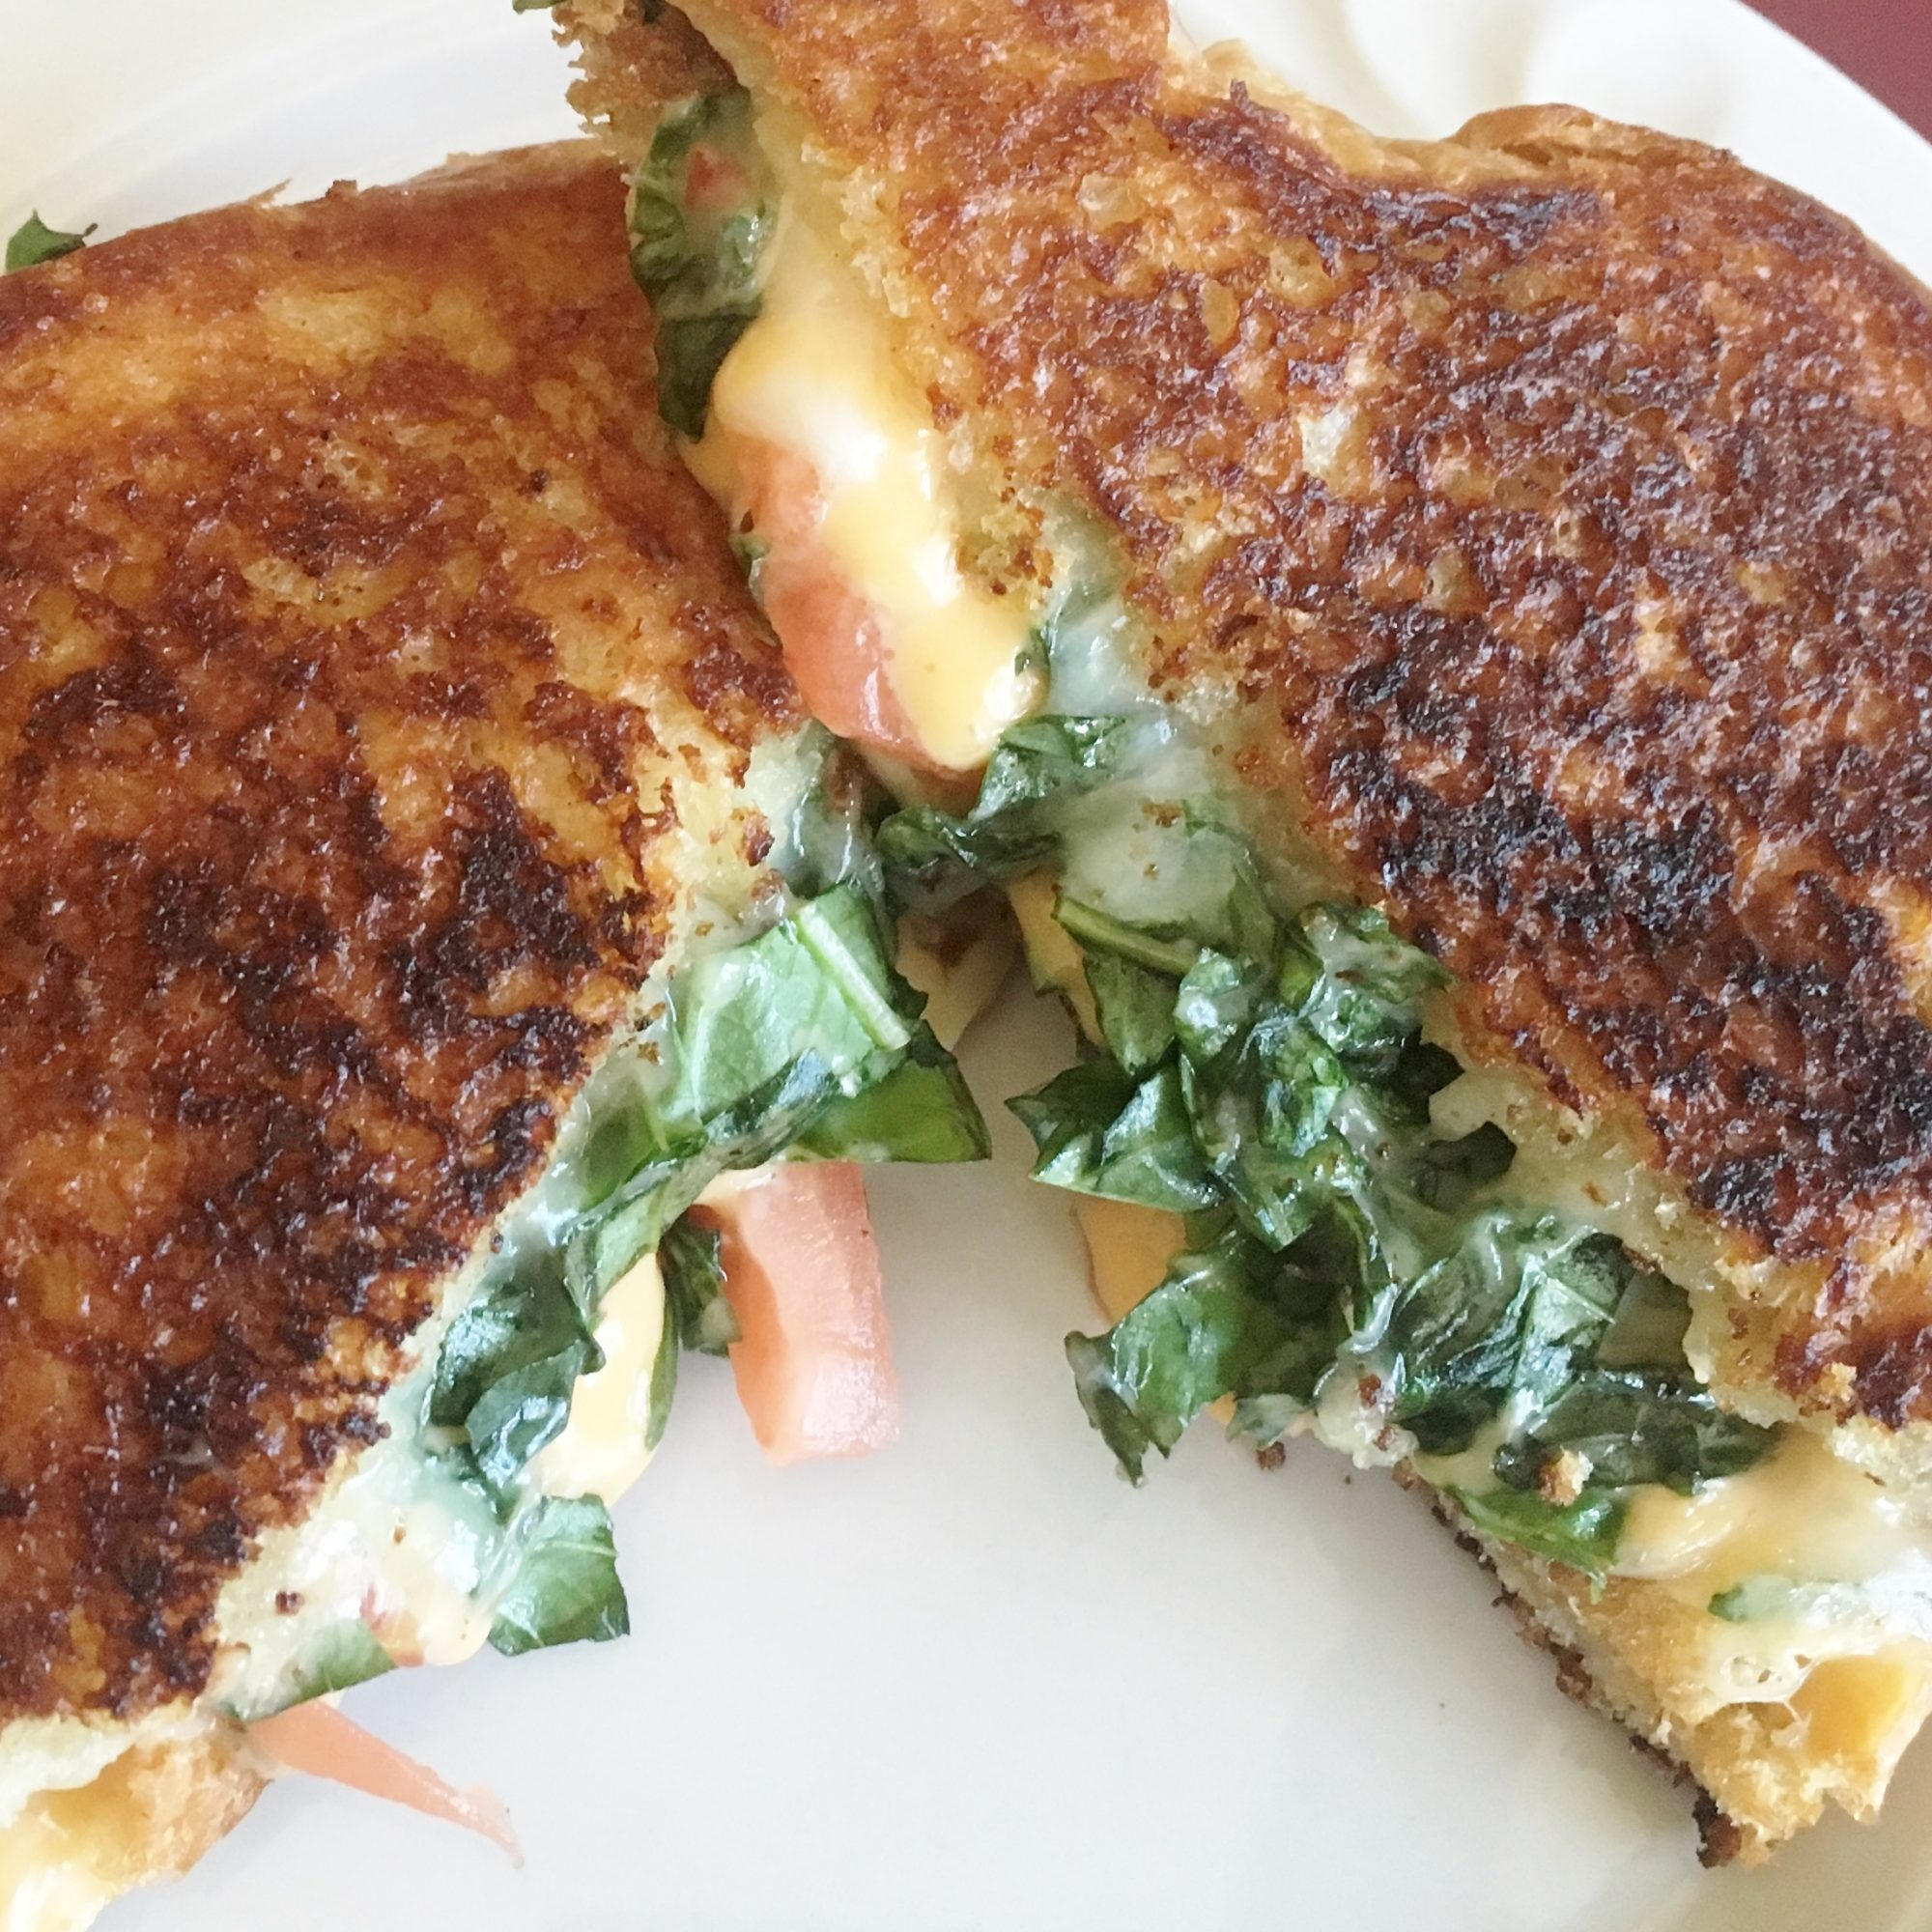 Three-Cheese and Basil Grilled Cheese Sandwich